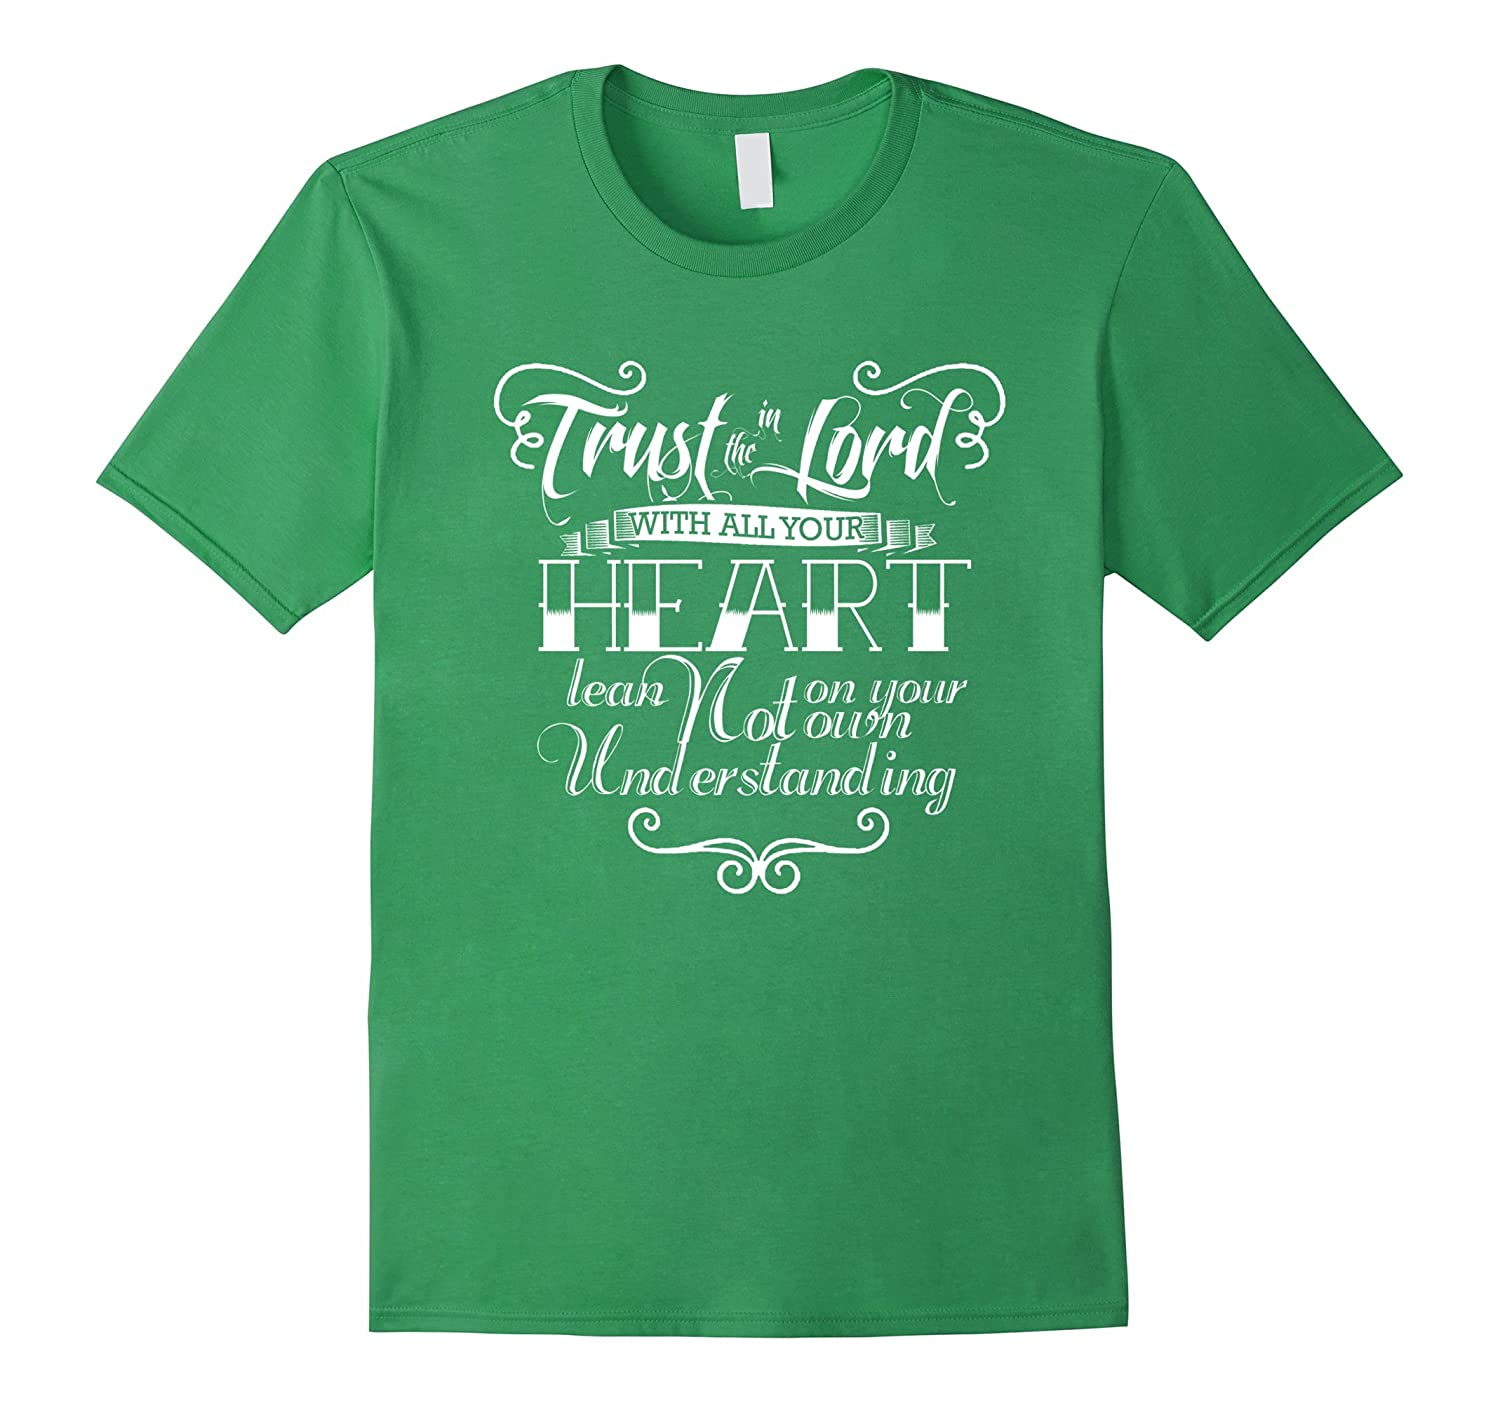 Trust in the lord shirt christian t shirt bible quotes for Bible t shirt quotes